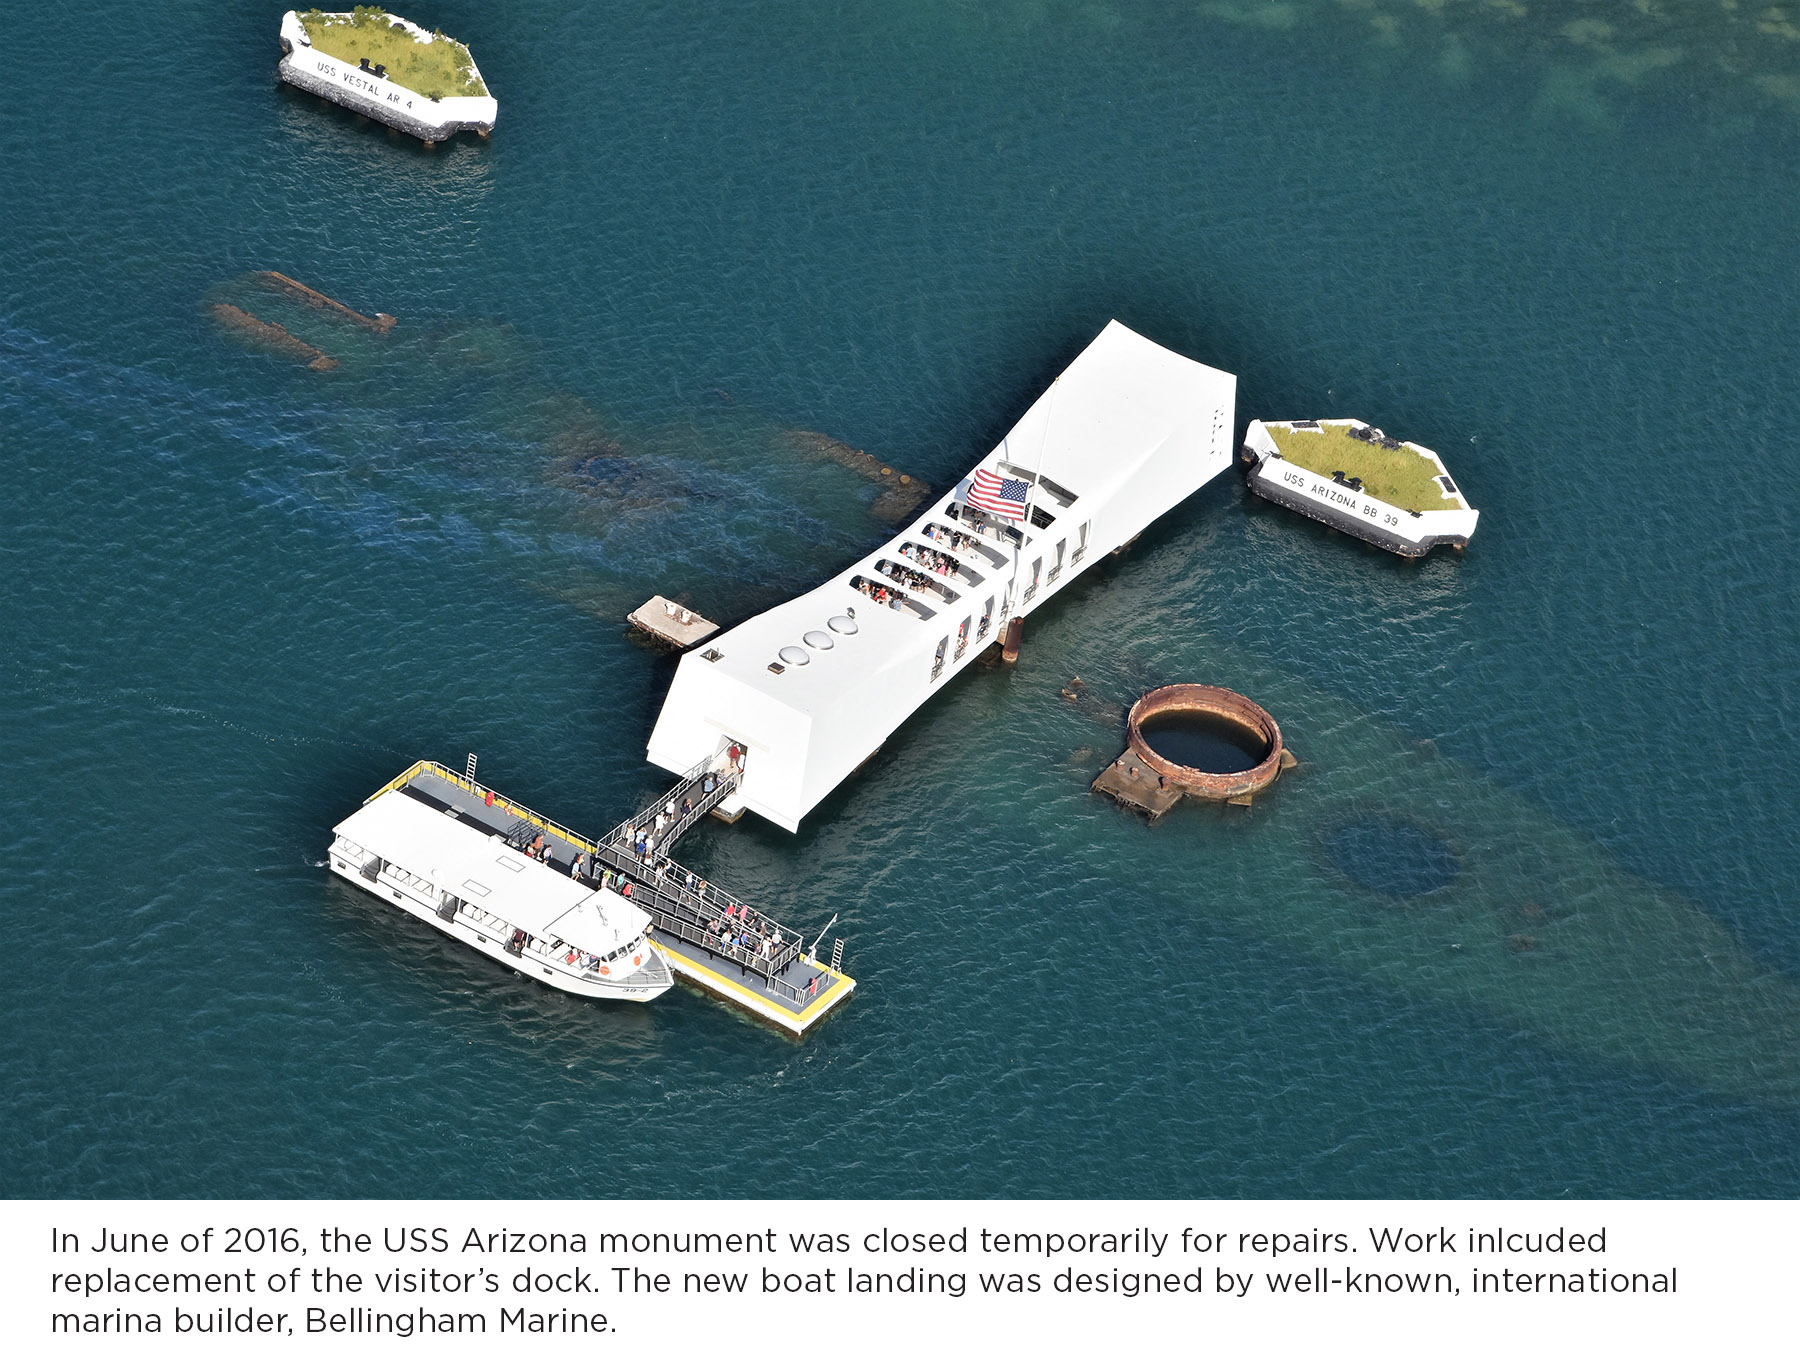 In June of 2016, the USS Arizona monument was temporarily closed for repairs. The new landing platform was designed by Bellingham Marine using modular concrete pontoons.